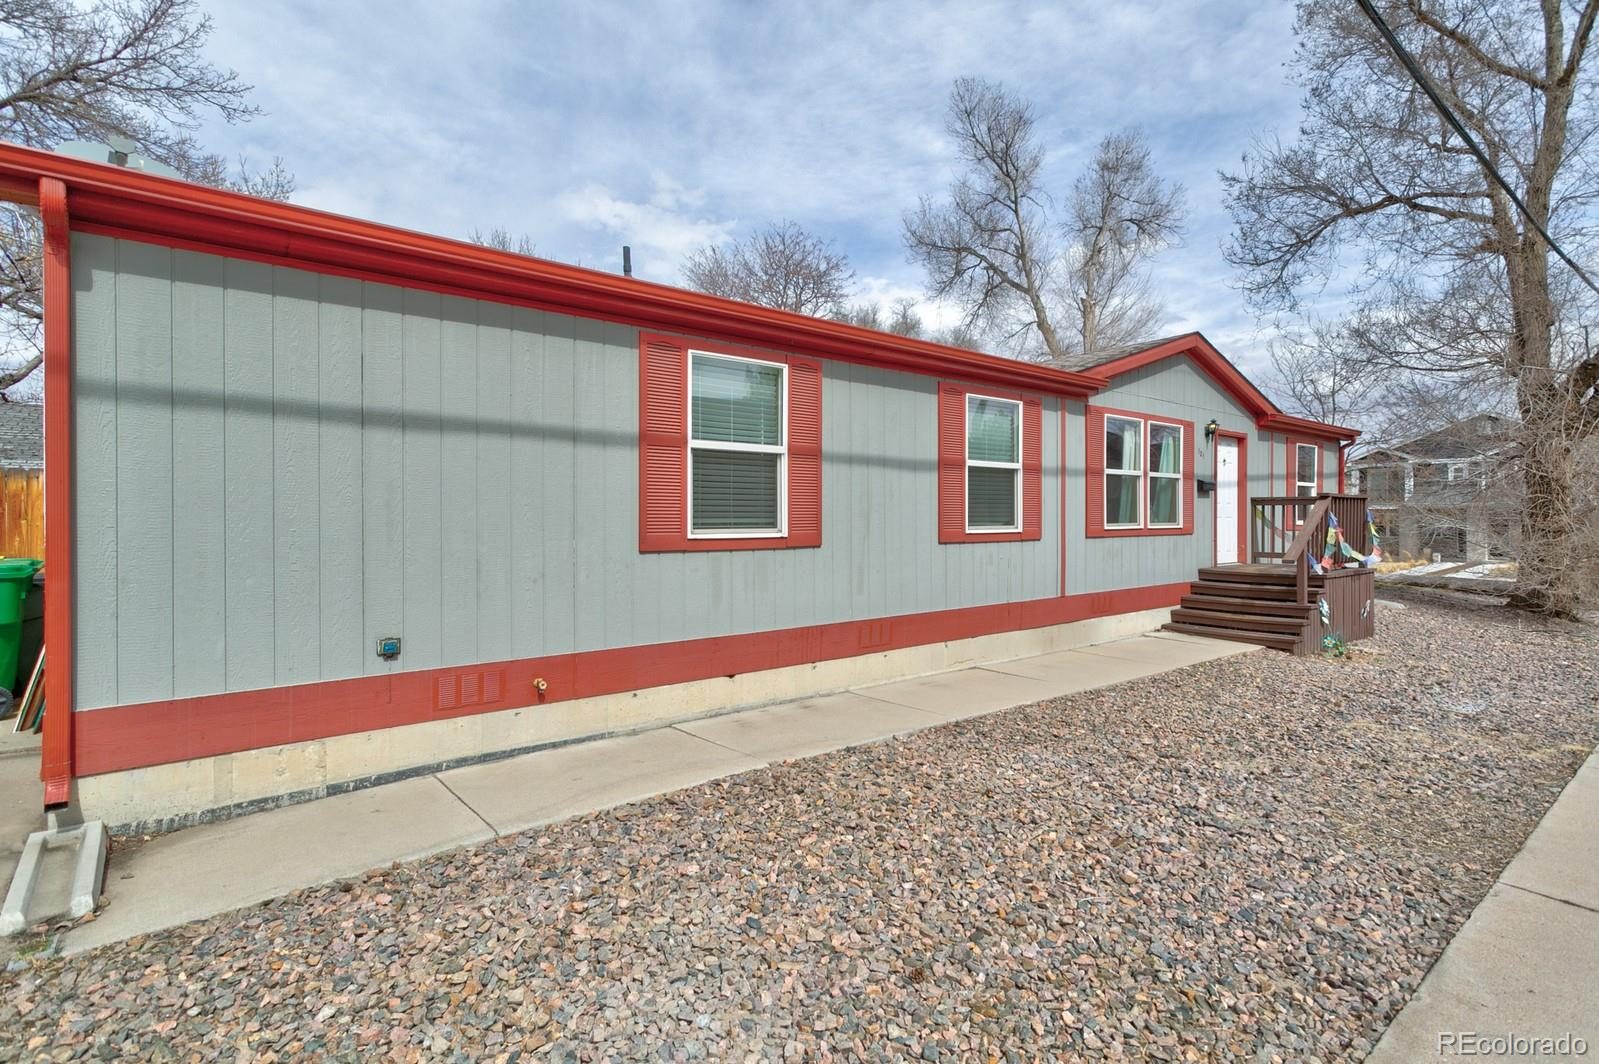 MLS# 2323093 - 101 W Layton Avenue, Englewood, CO 80110